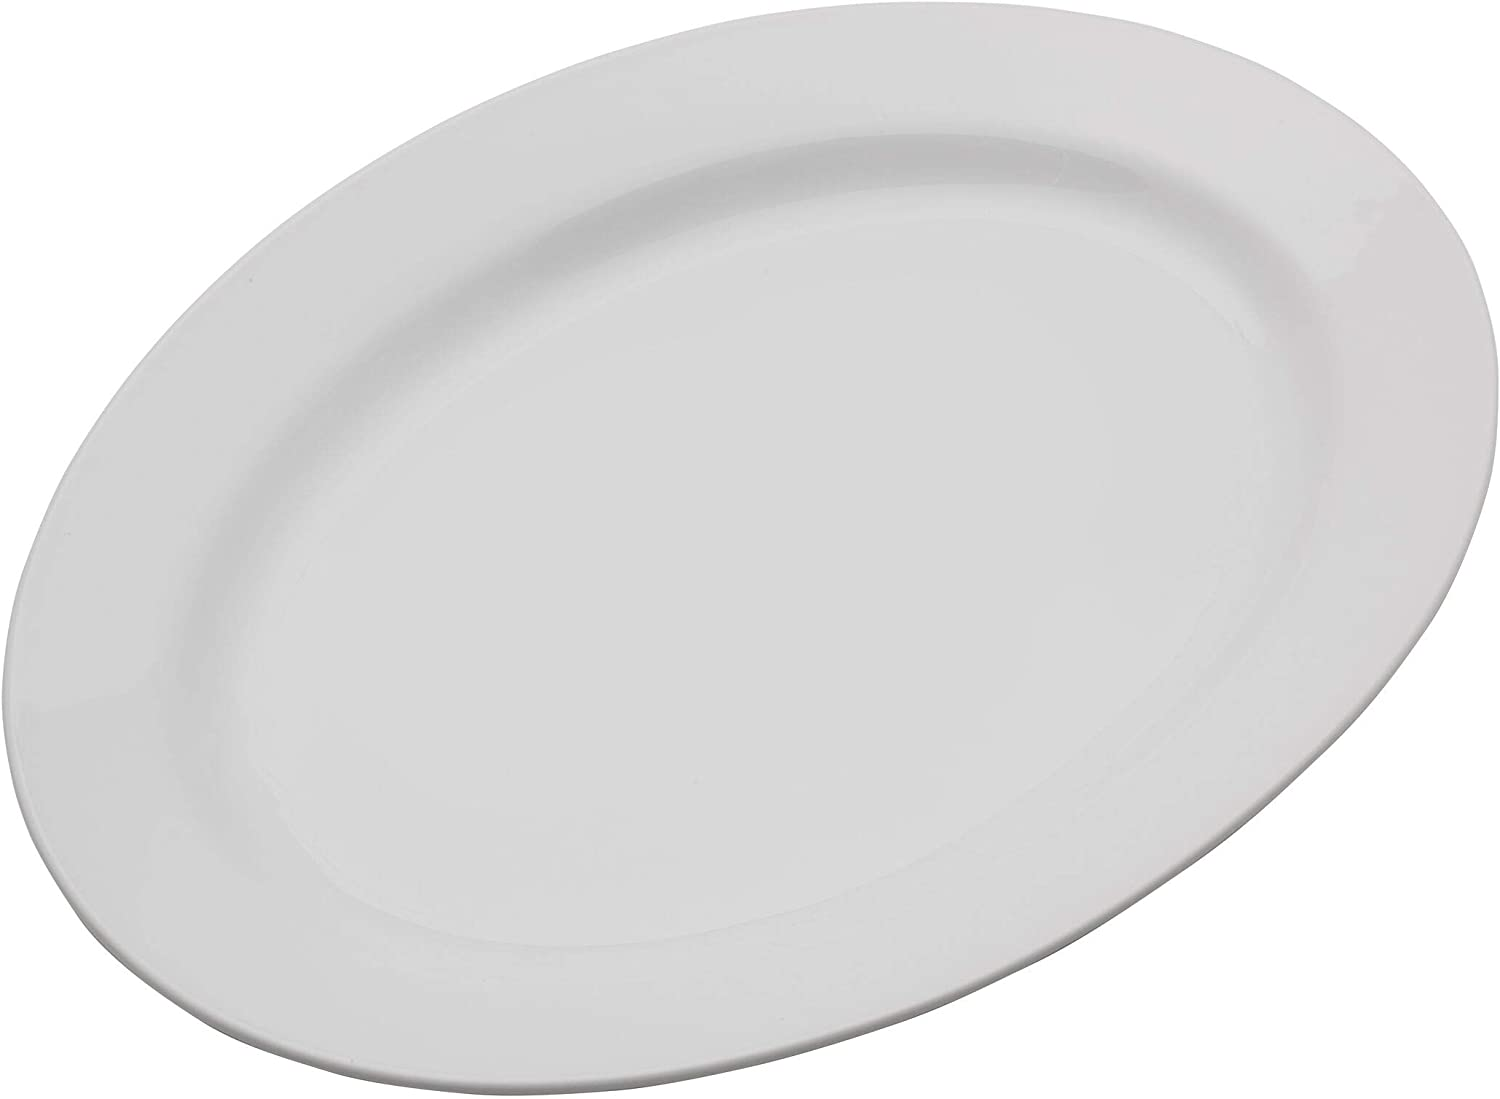 Everyday White by Fitz and Floyd Oval Platter Seasonal Wrap Introduction Serving 1 famous 16 inch